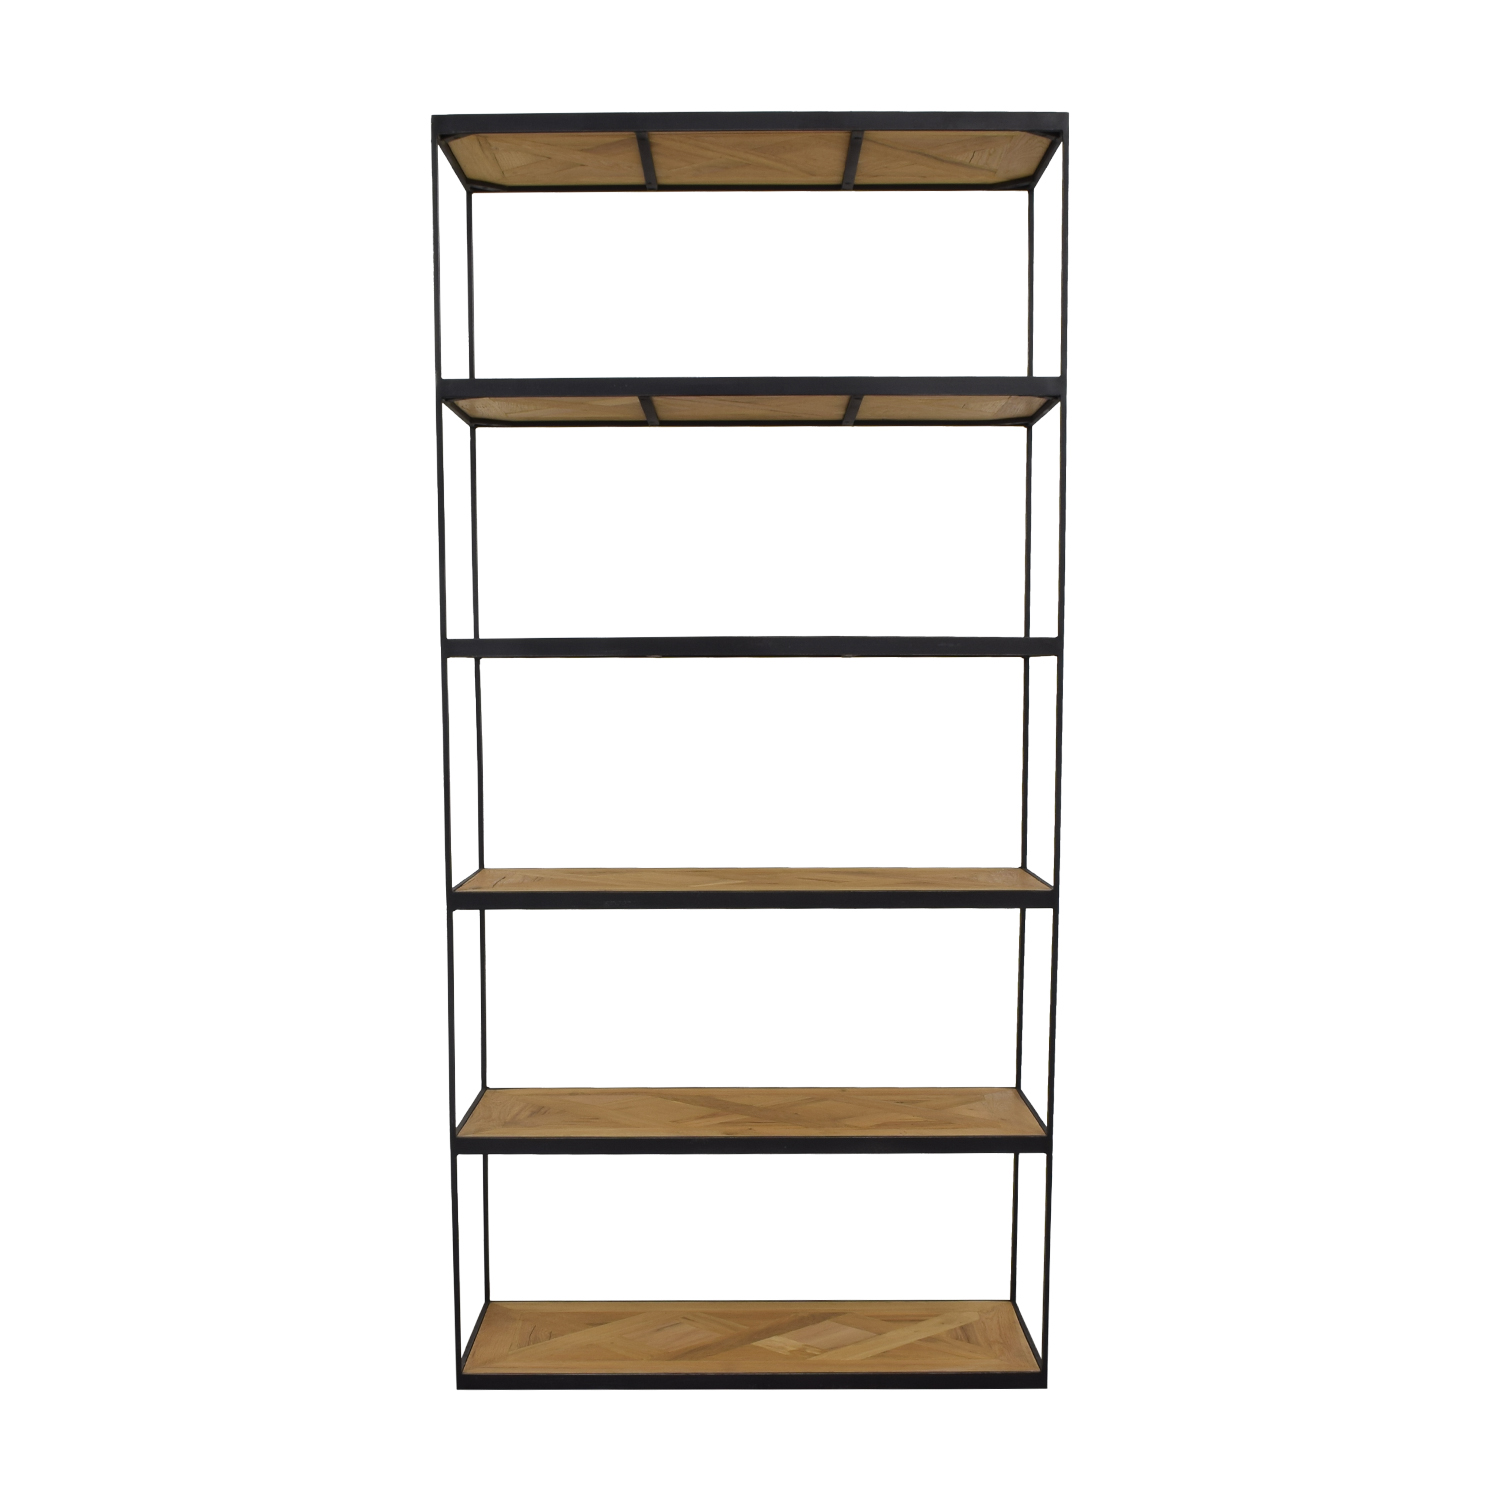 Restoration Hardware Restoration Hardware Open Bookshelf Storage